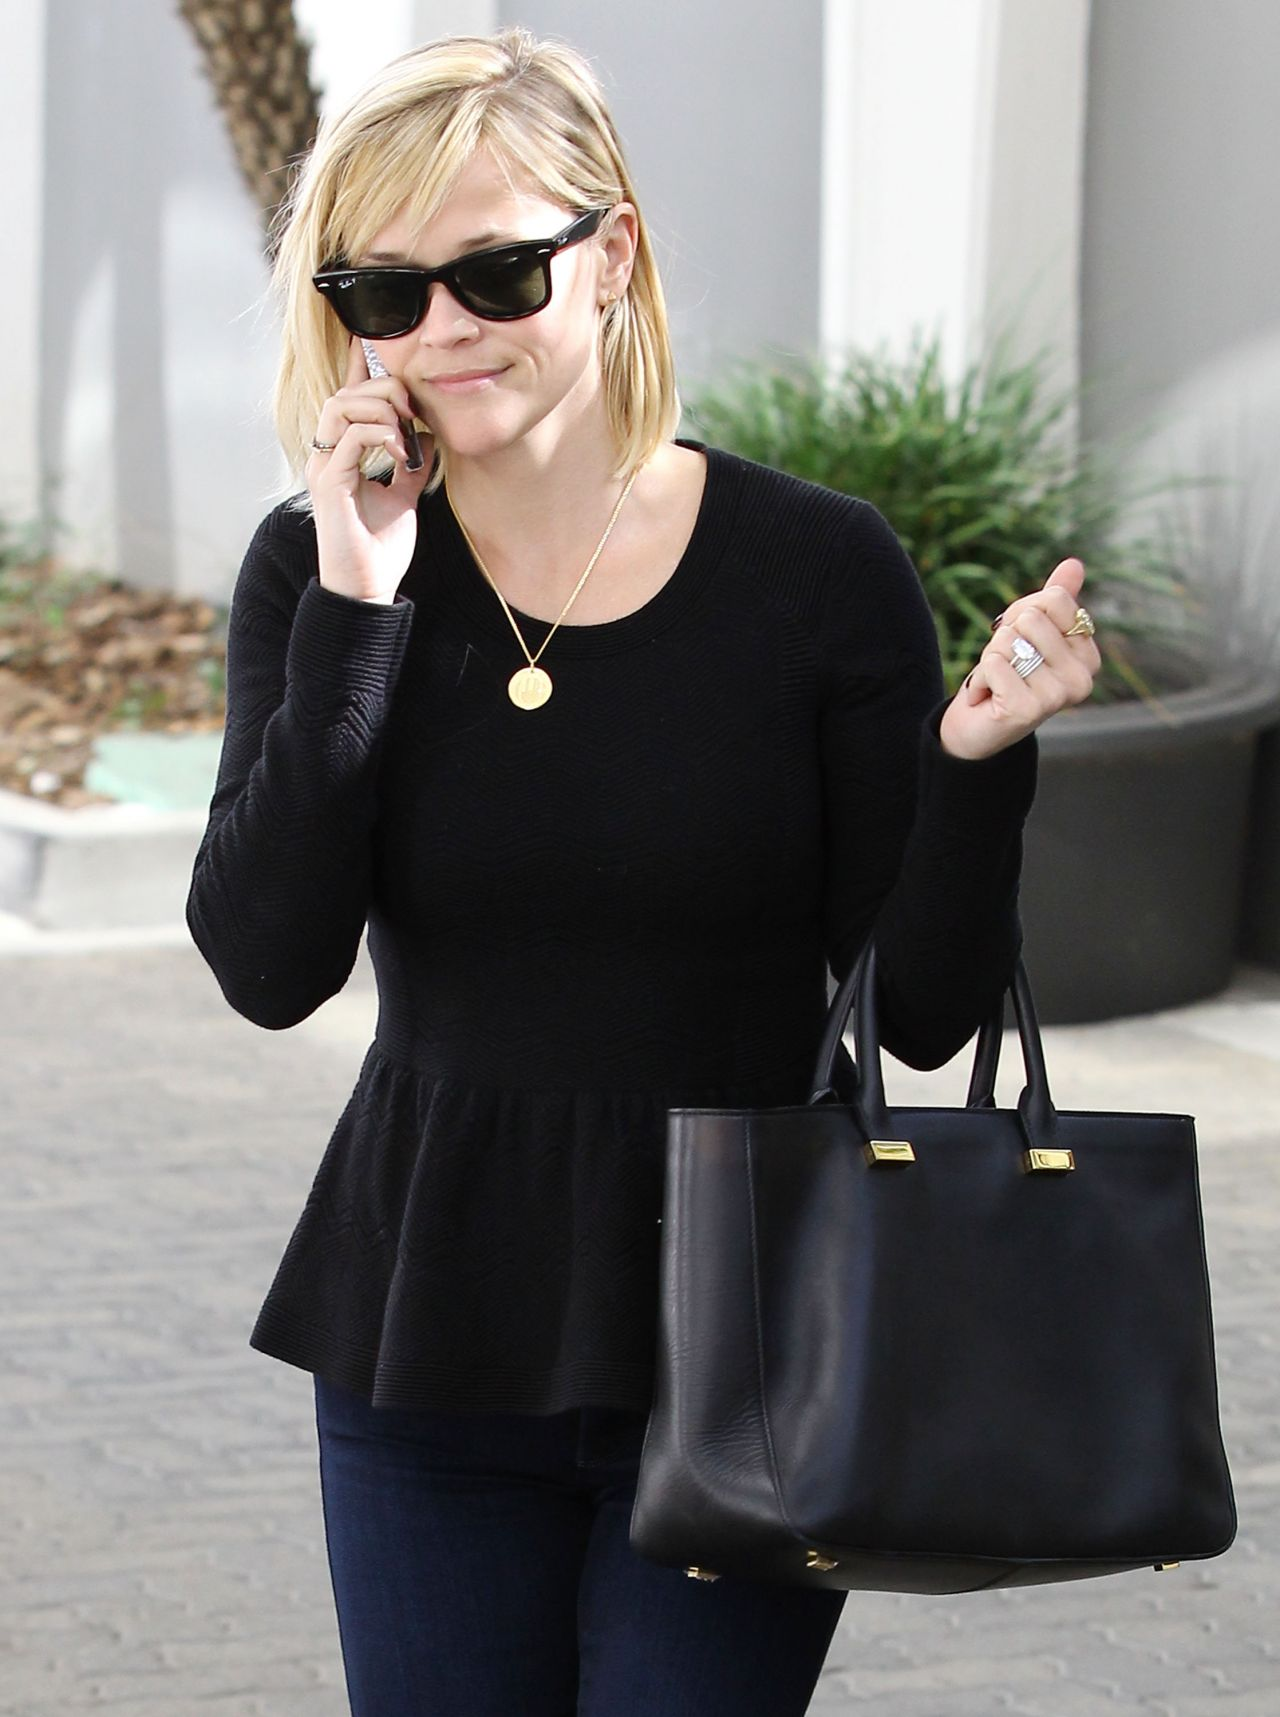 Reese Witherspoon Street Style  - Out  n Brentwood California, January 2014